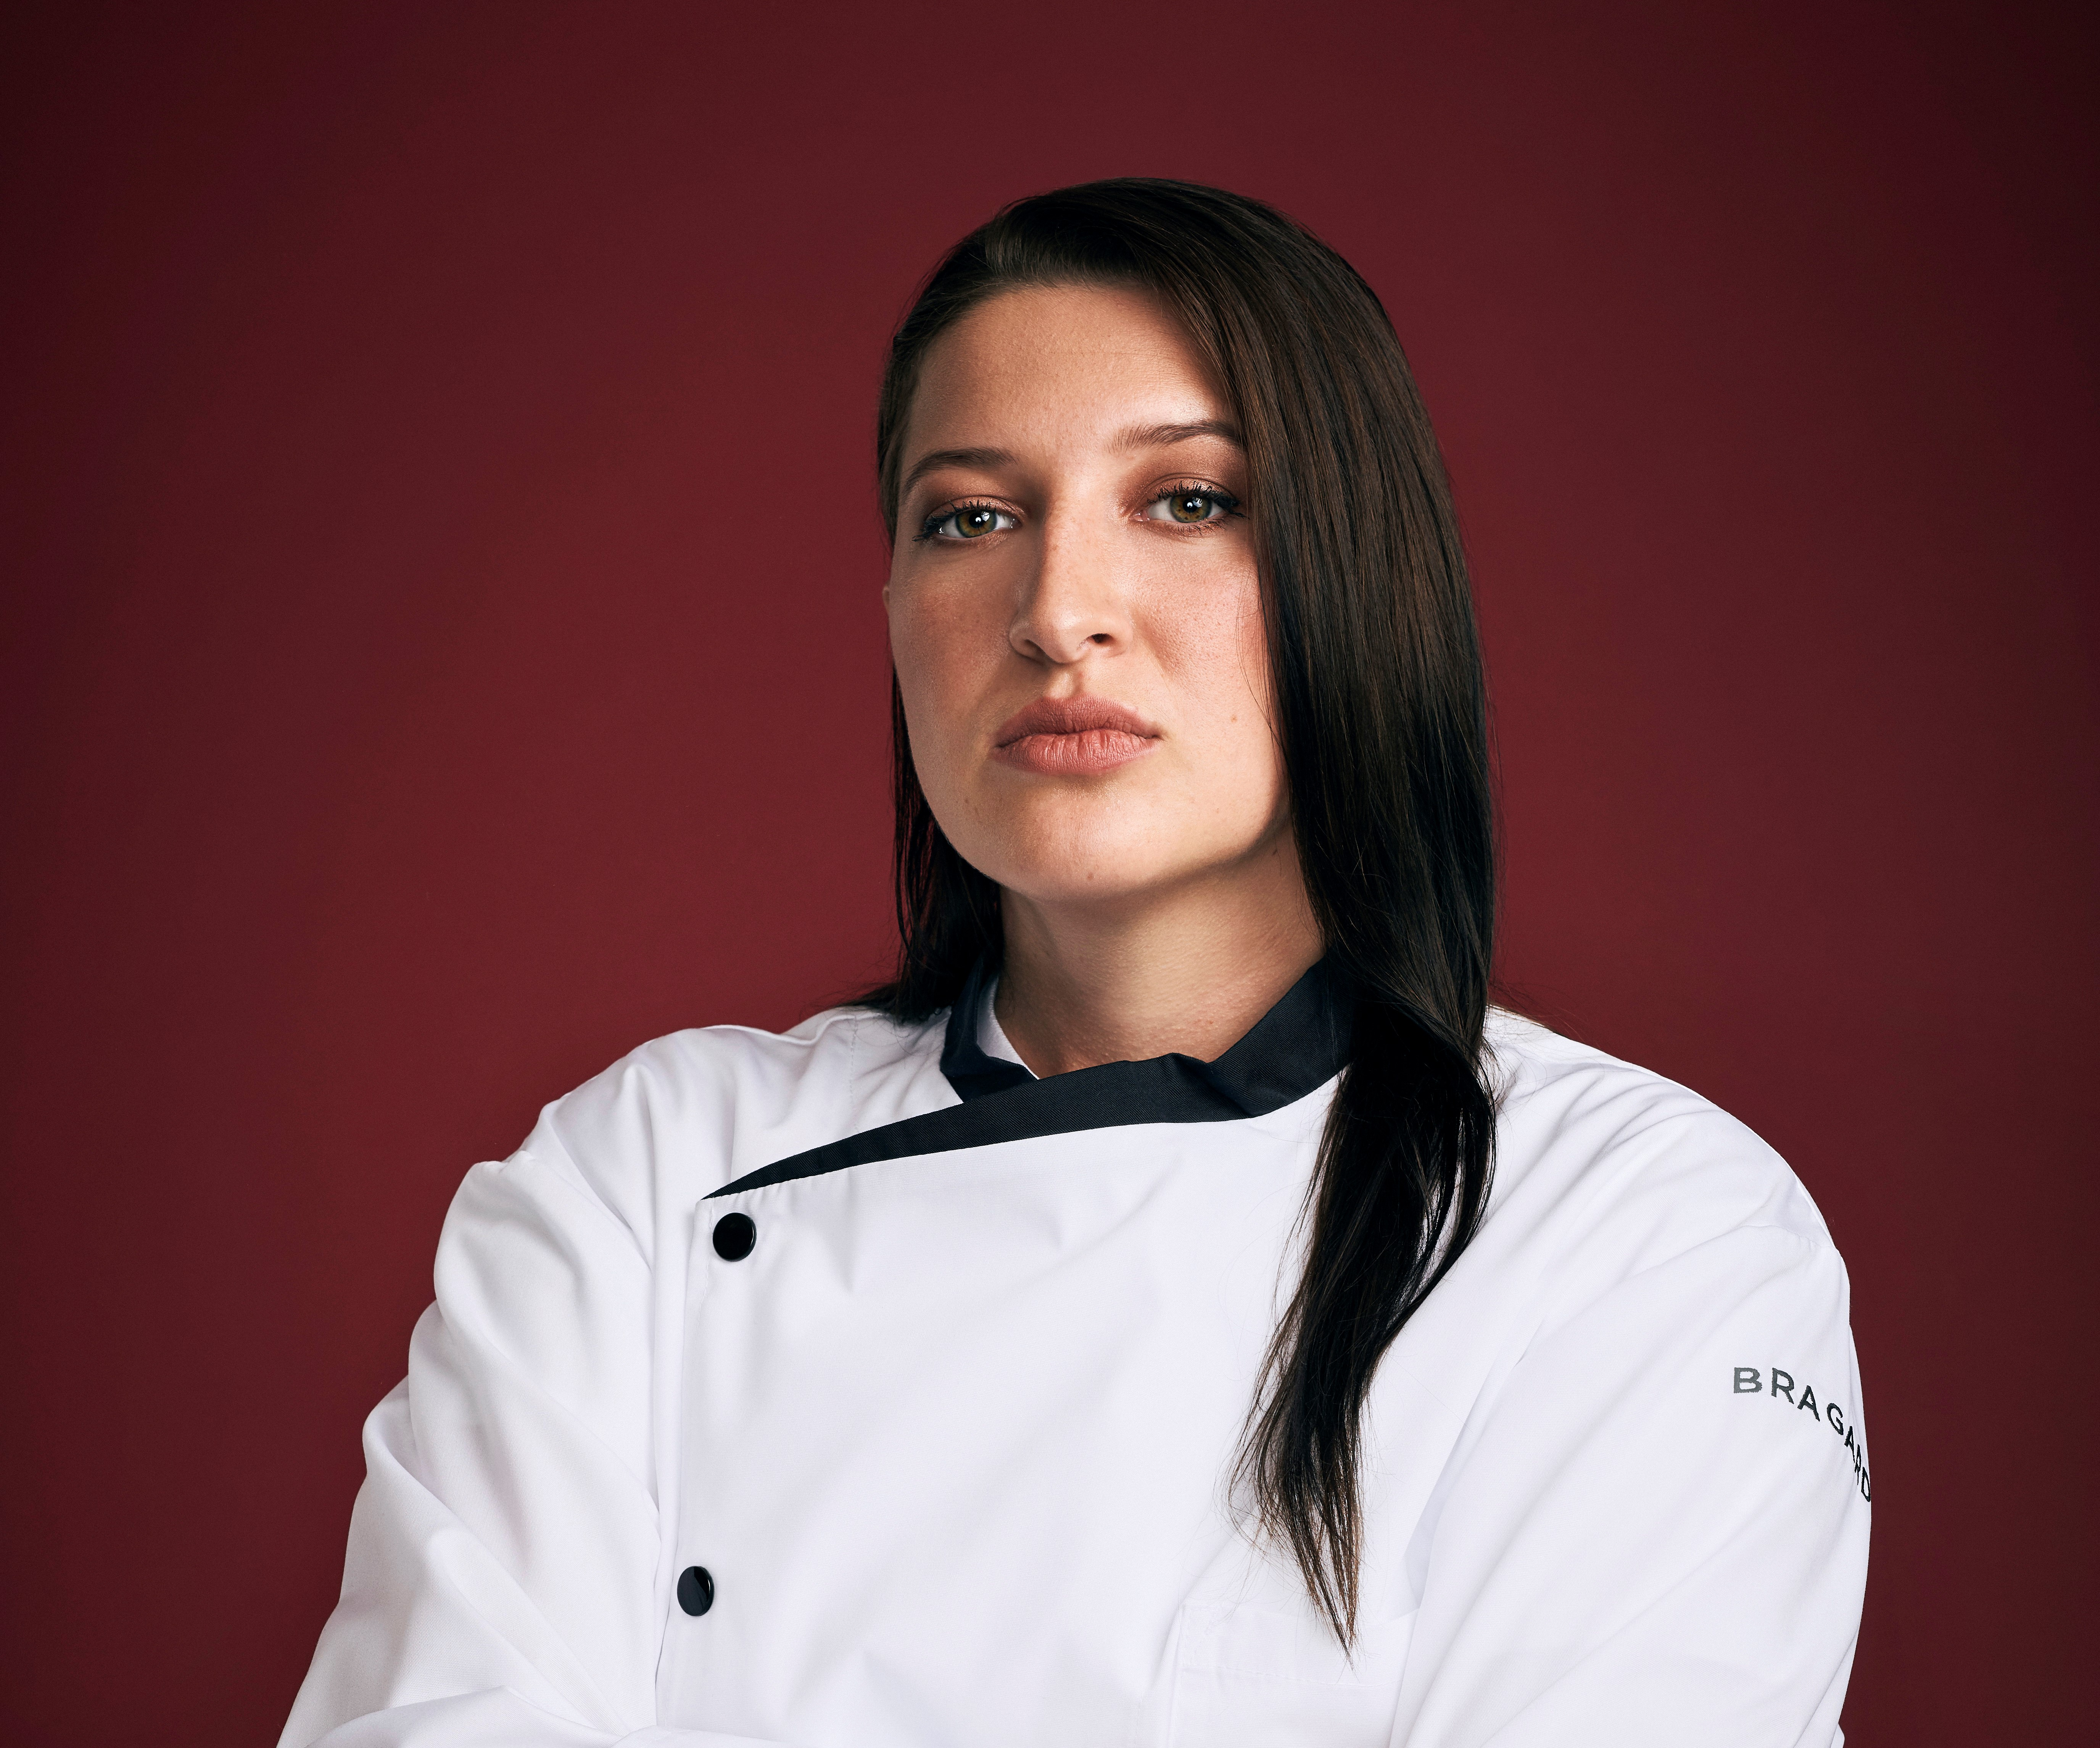 Hell S Kitchen Has Its First Vegan Chef Competing And She S From Michigan Mlive Com